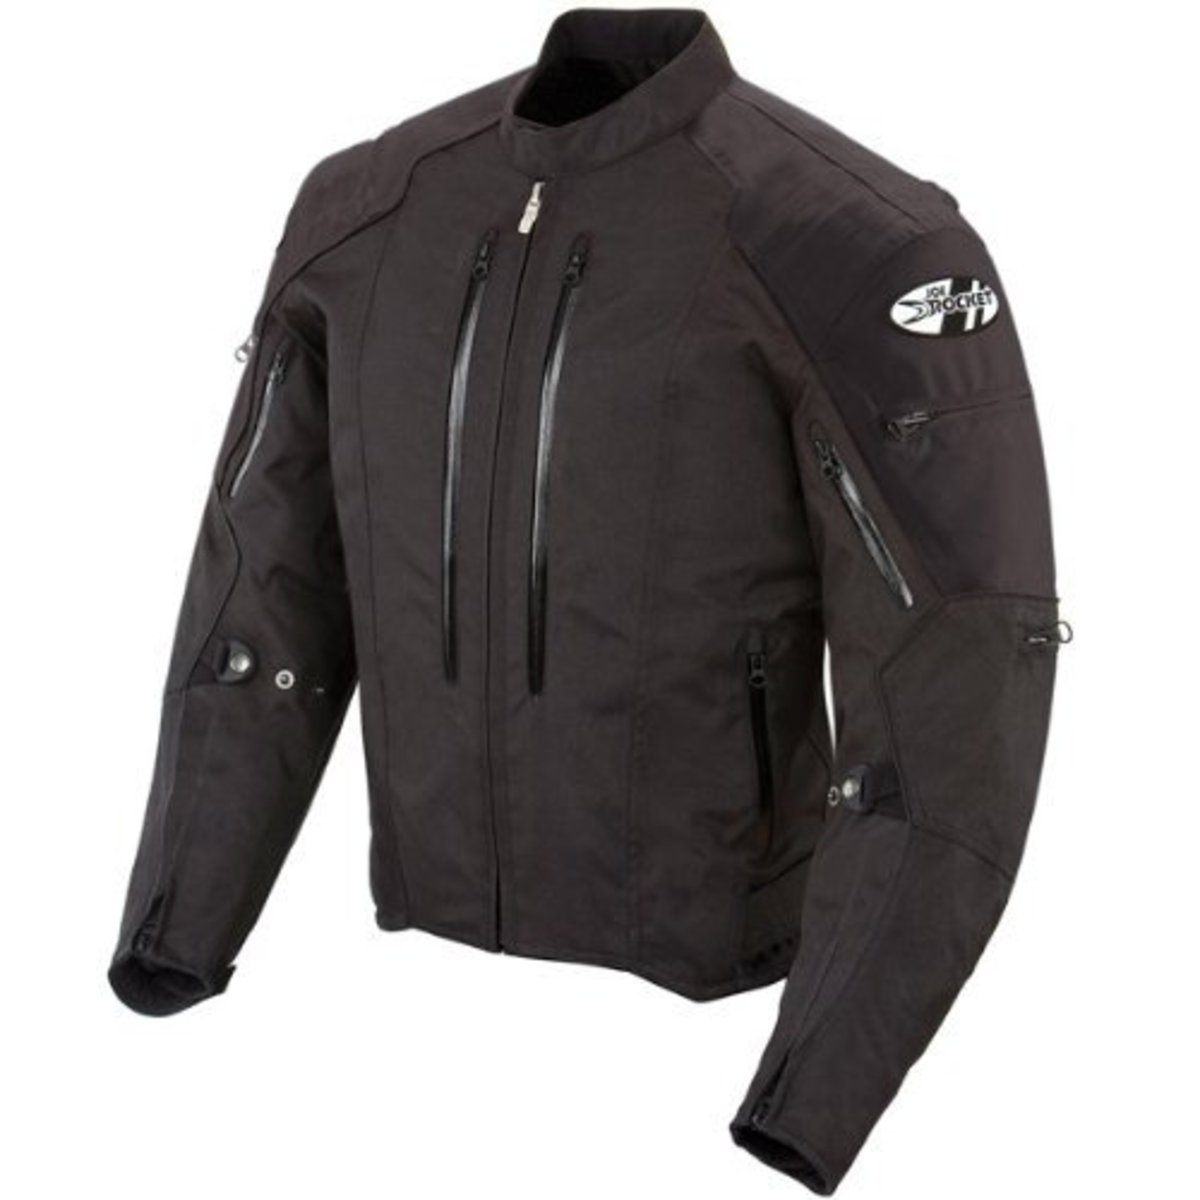 Best Value Inexpensive Motorcycle Jackets for Men Under 200